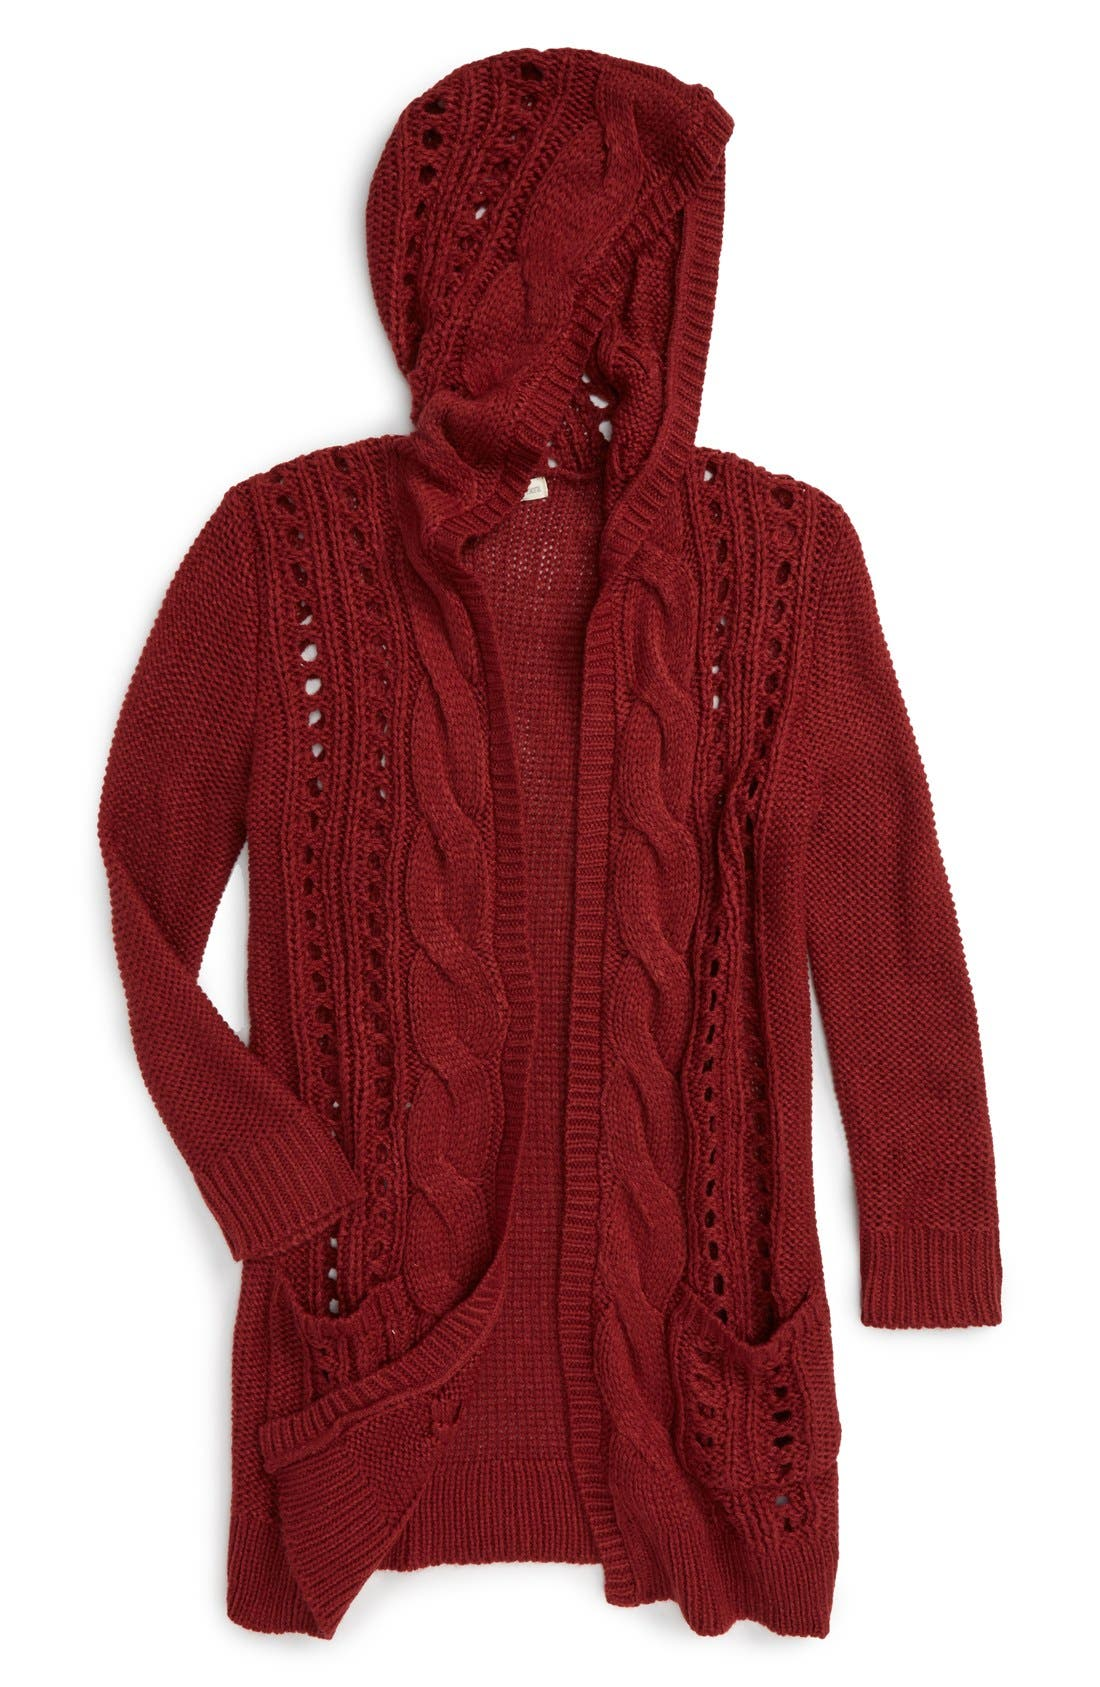 Main Image - Tucker + Tate Hooded Cardigan (Big Girls)